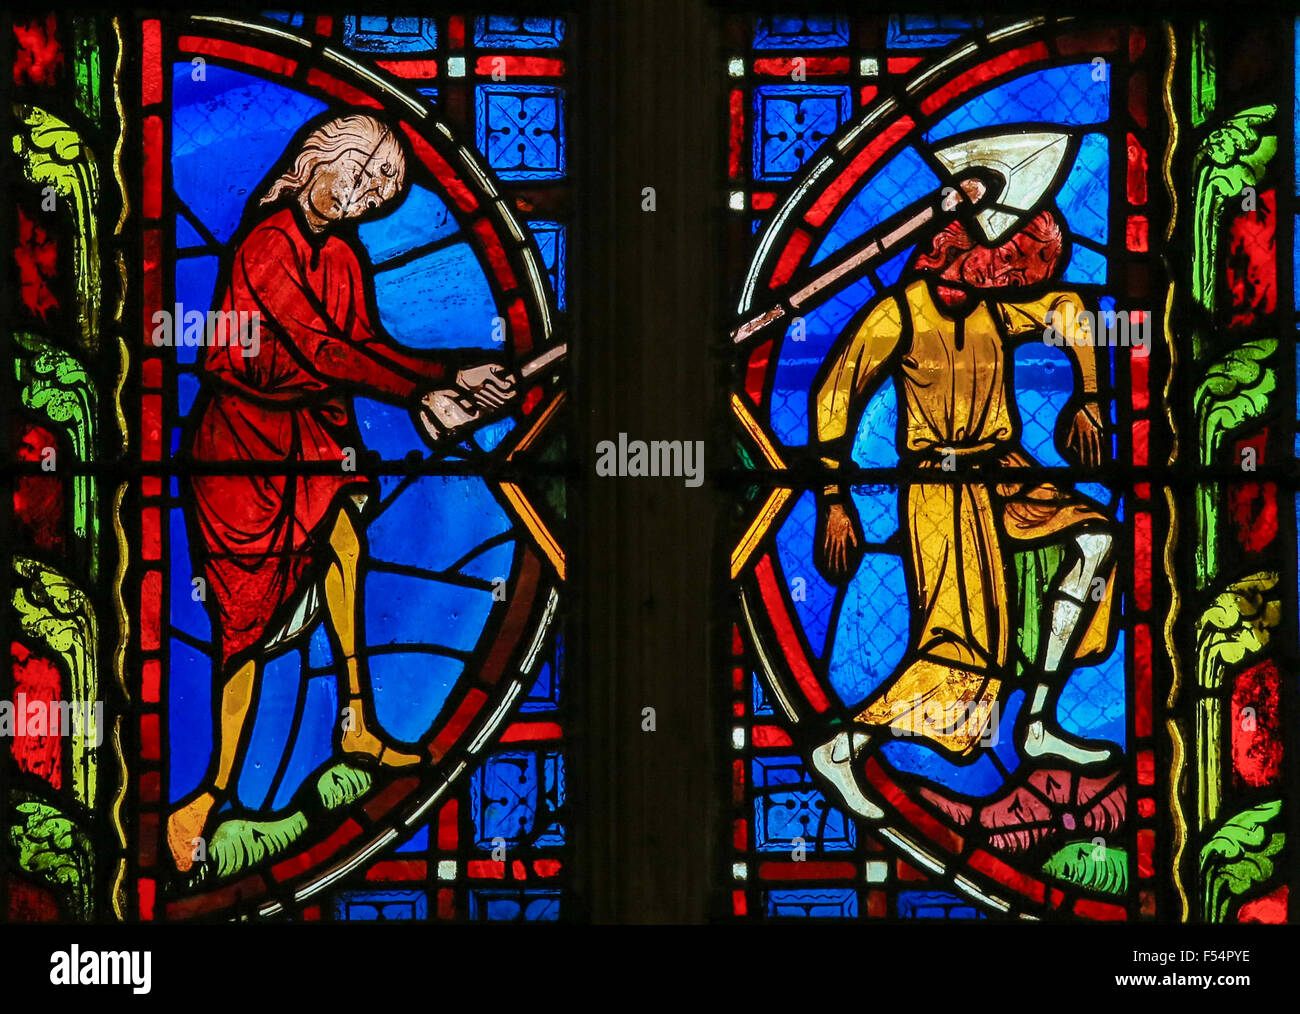 Stained glass window depicting one person hitting another with a spade in the Cathedral of Tours, France. - Stock Image